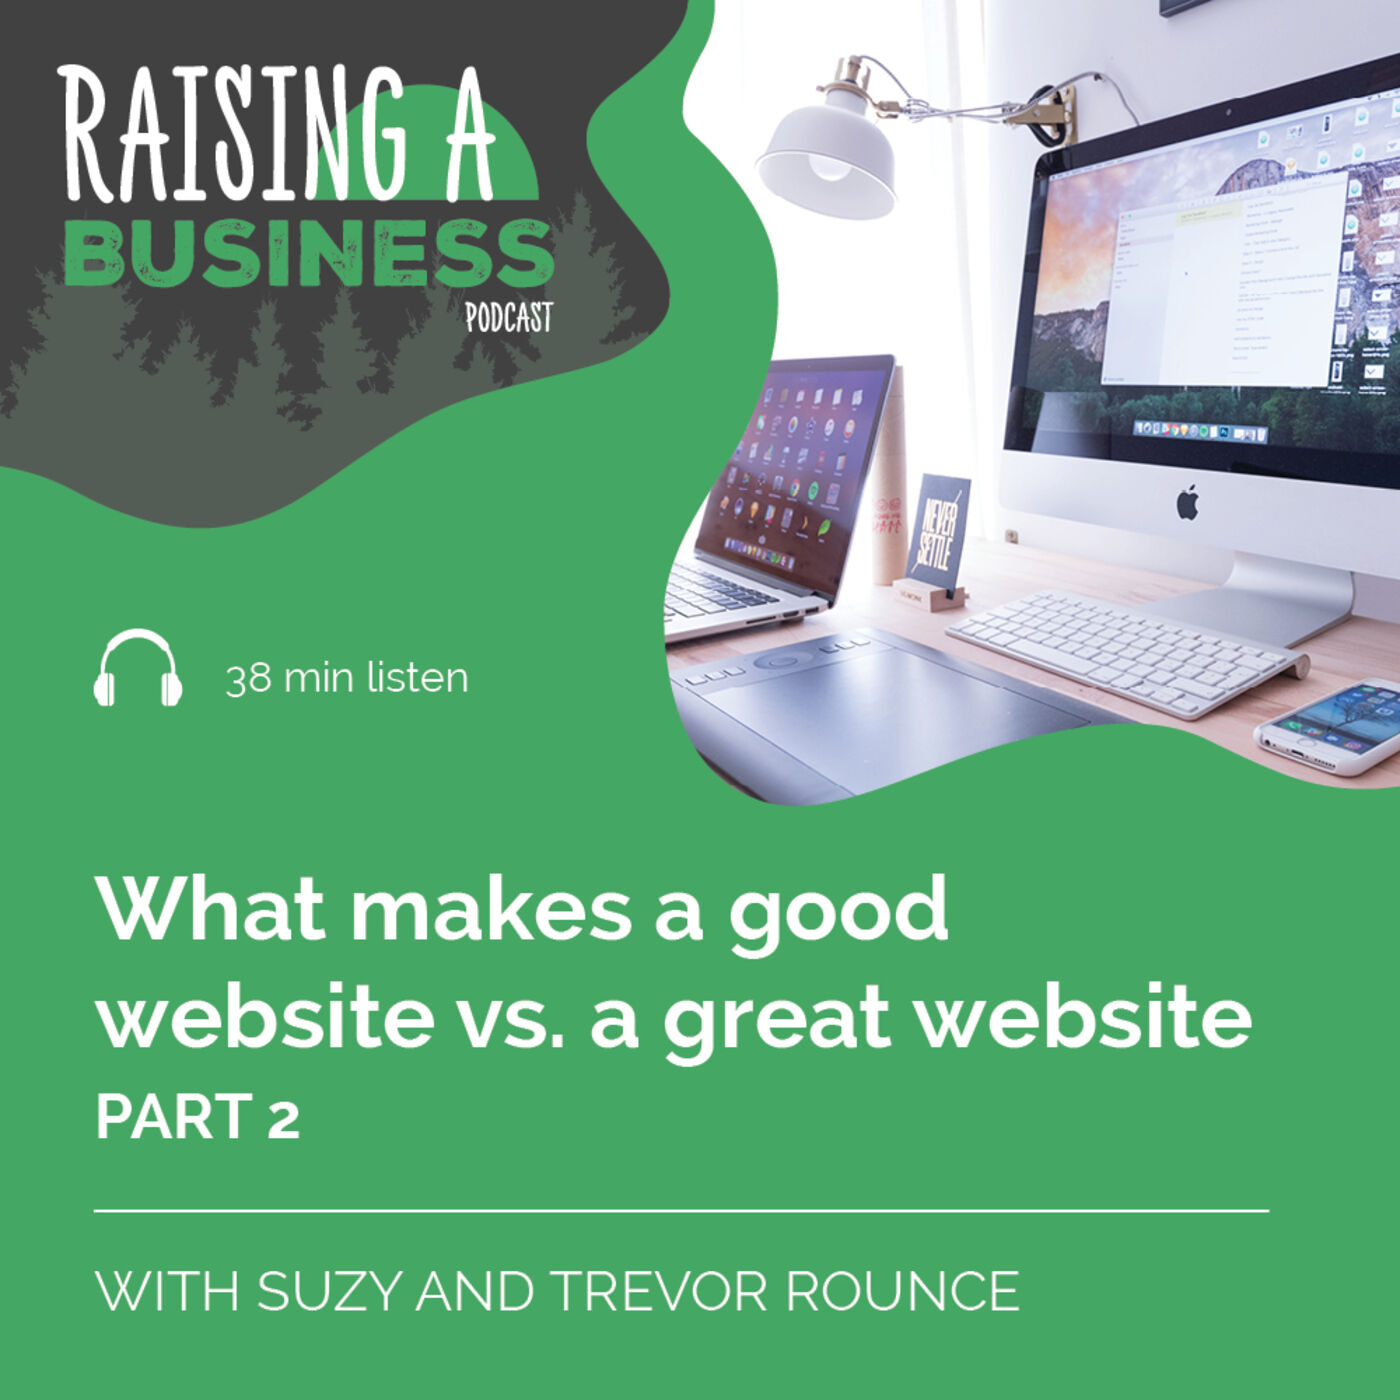 RAB 009 What makes a good website vs. a great website - part 2